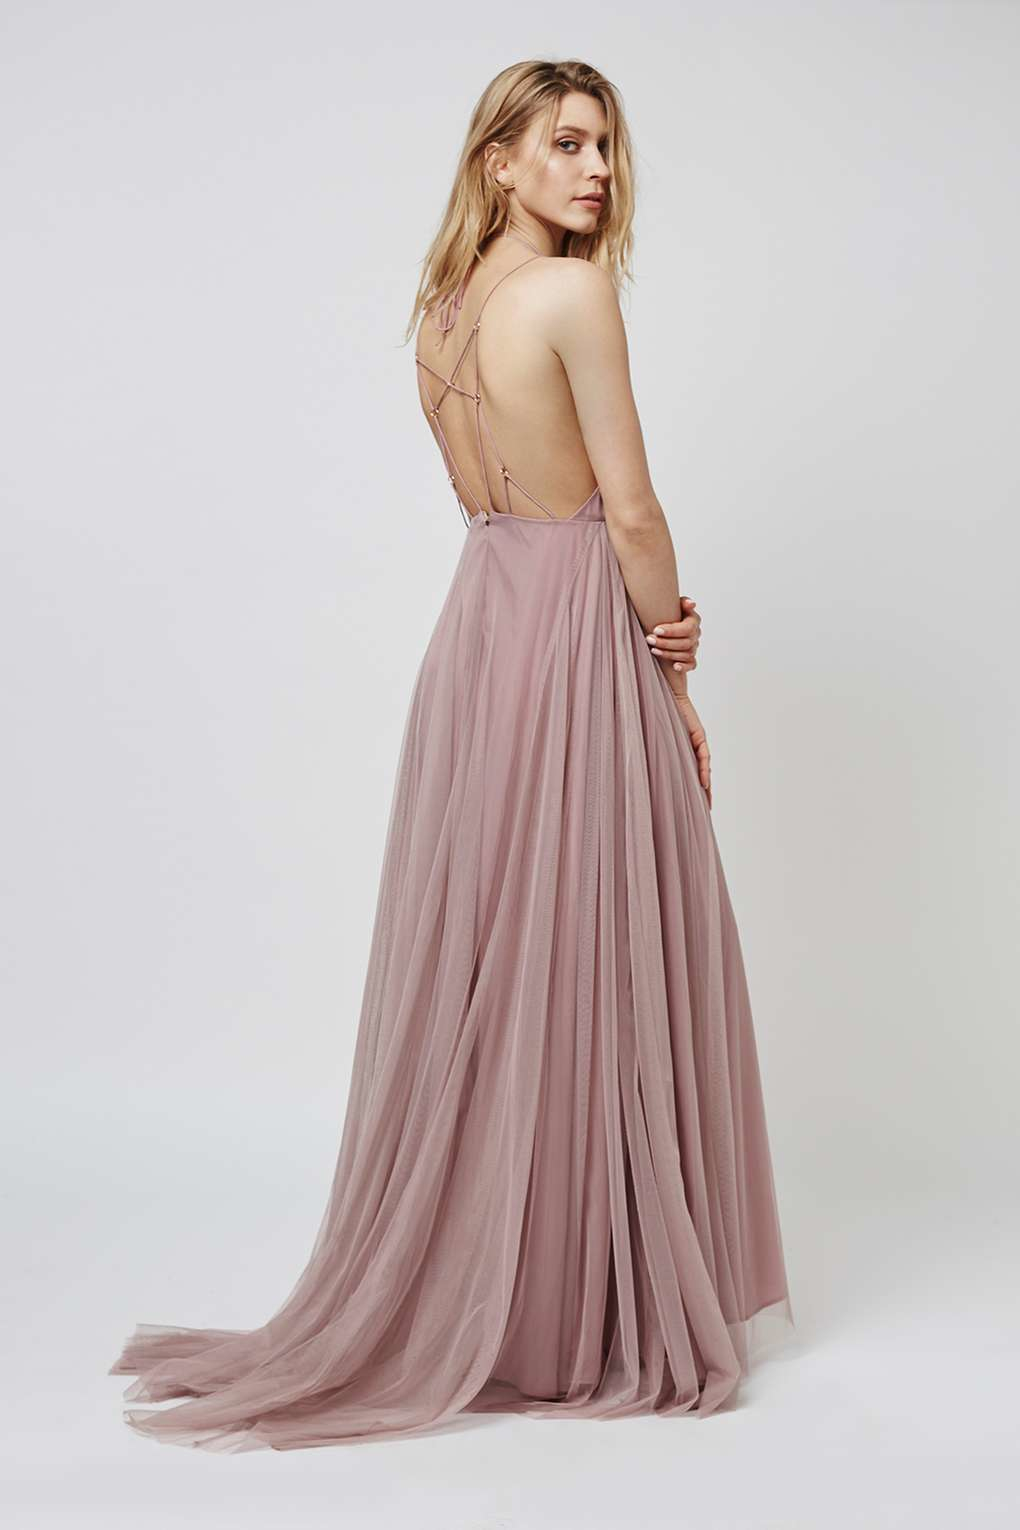 8c15f5eacdb TOPSHOP Tulle Lace-up Maxi Dress in Pink - Lyst